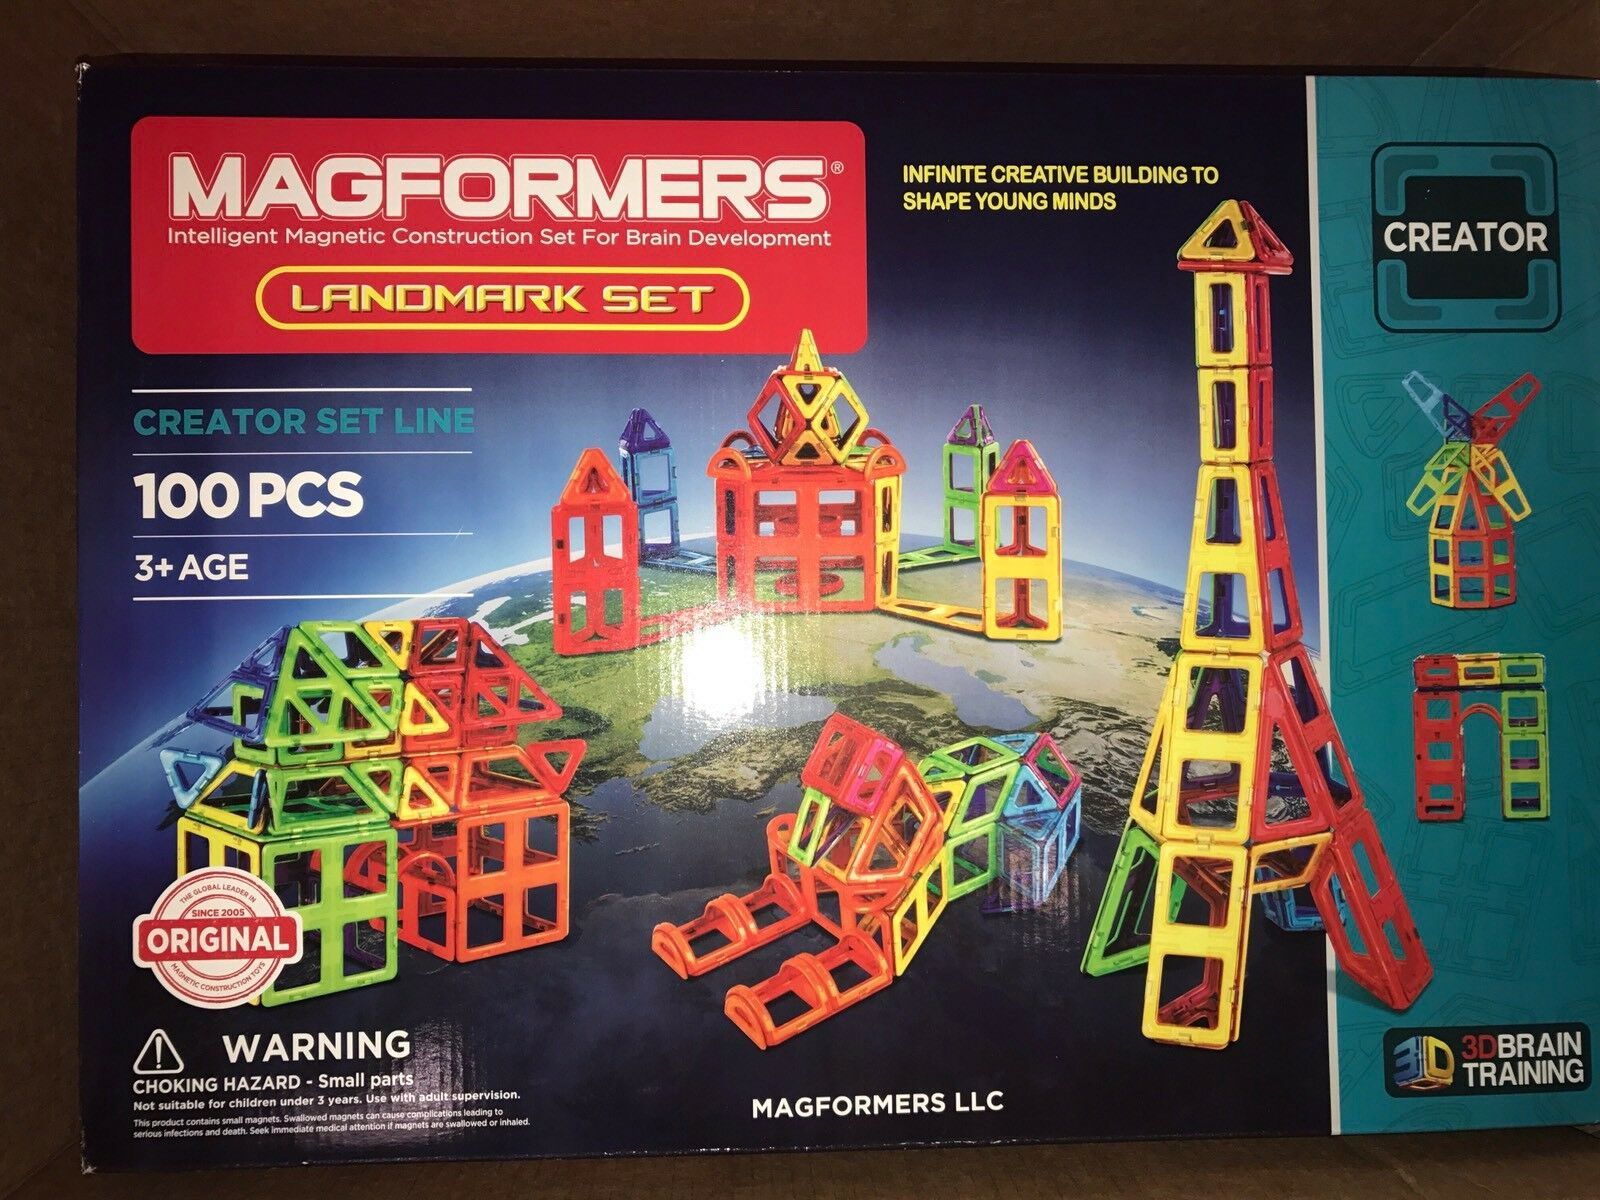 Brand New In Box Magformers Landmark Set 100 Pieces Free Shipping